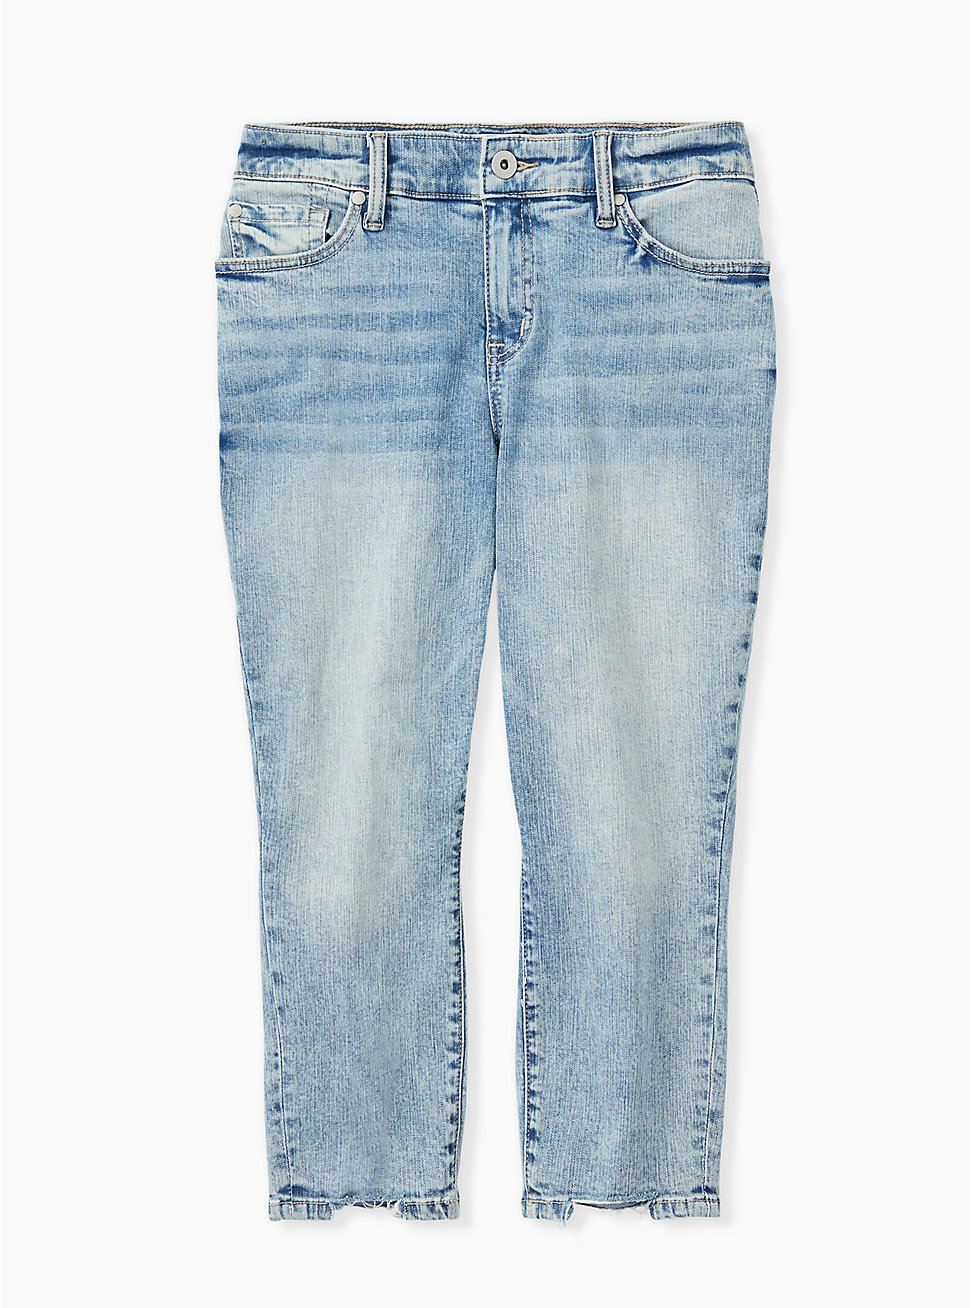 Crop Mid Rise Skinny Jean - Vintage Stretch Light Wash, AUTOBAHN, hi-res